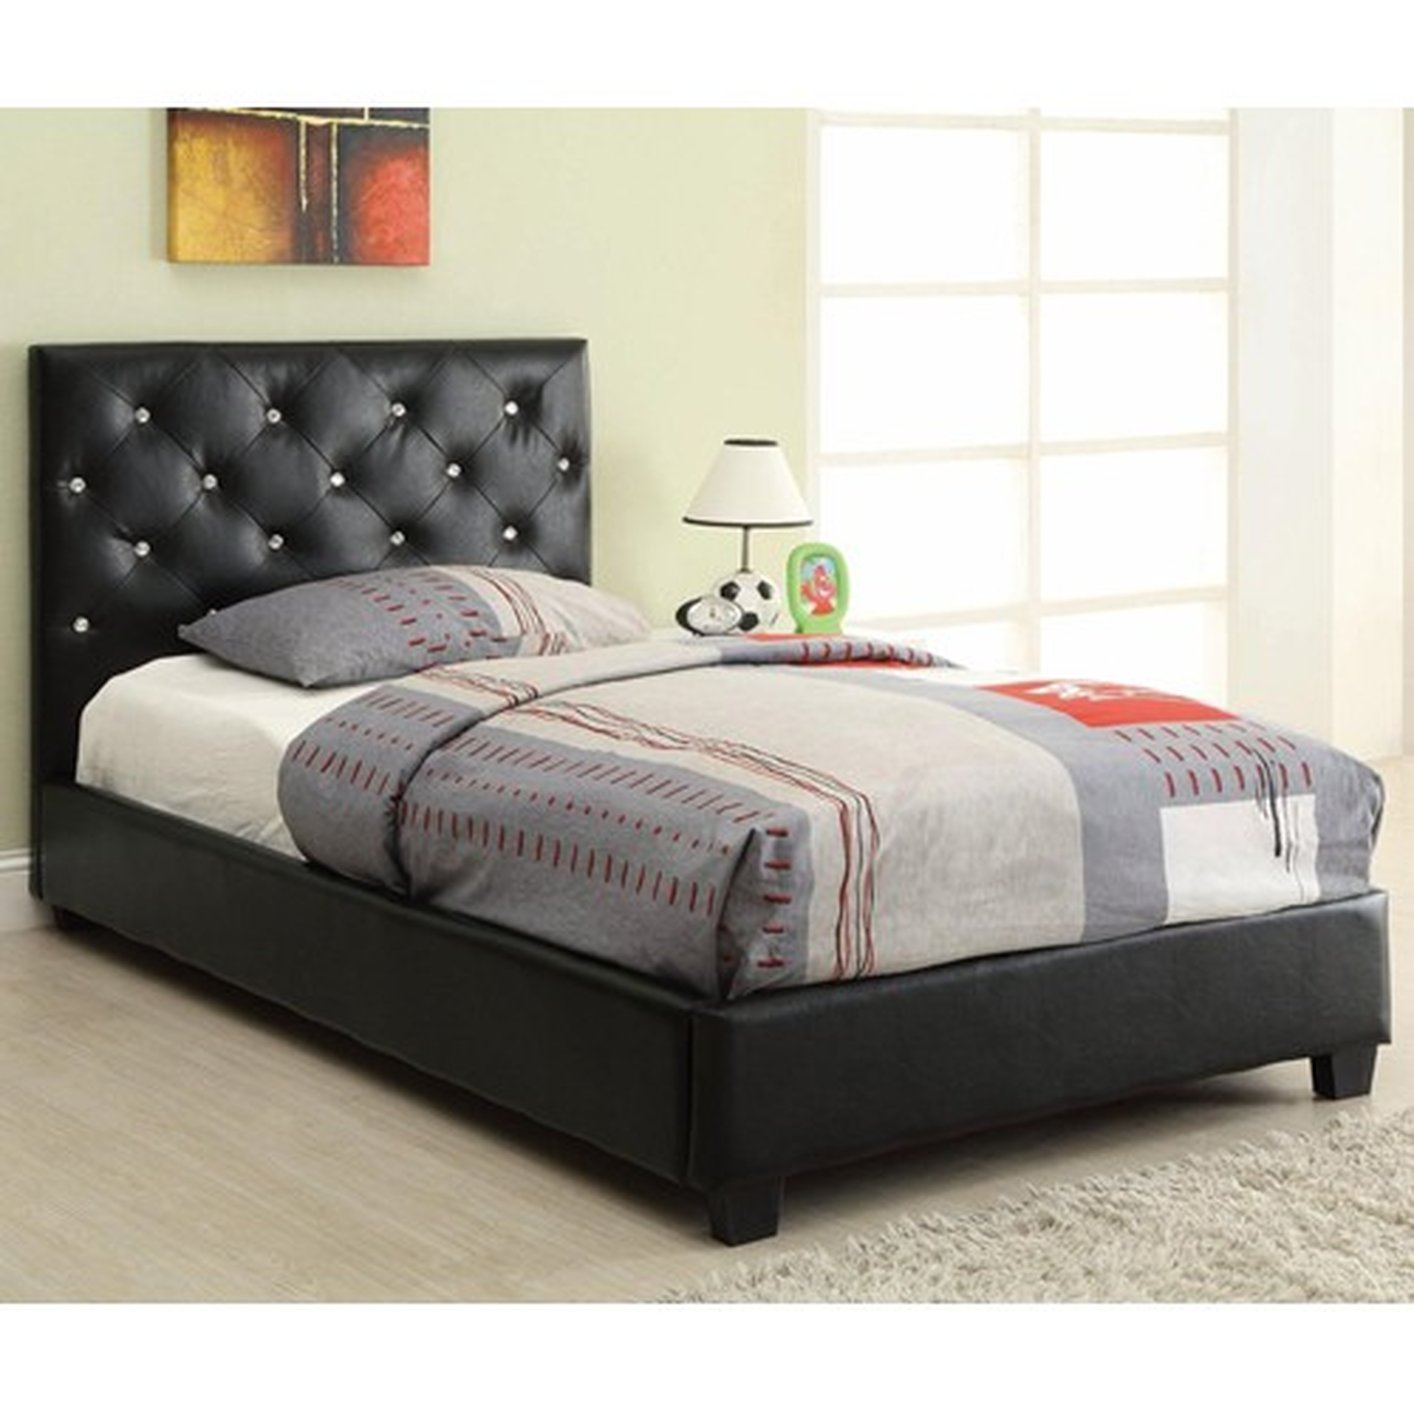 Black Leather Twin Size Bed